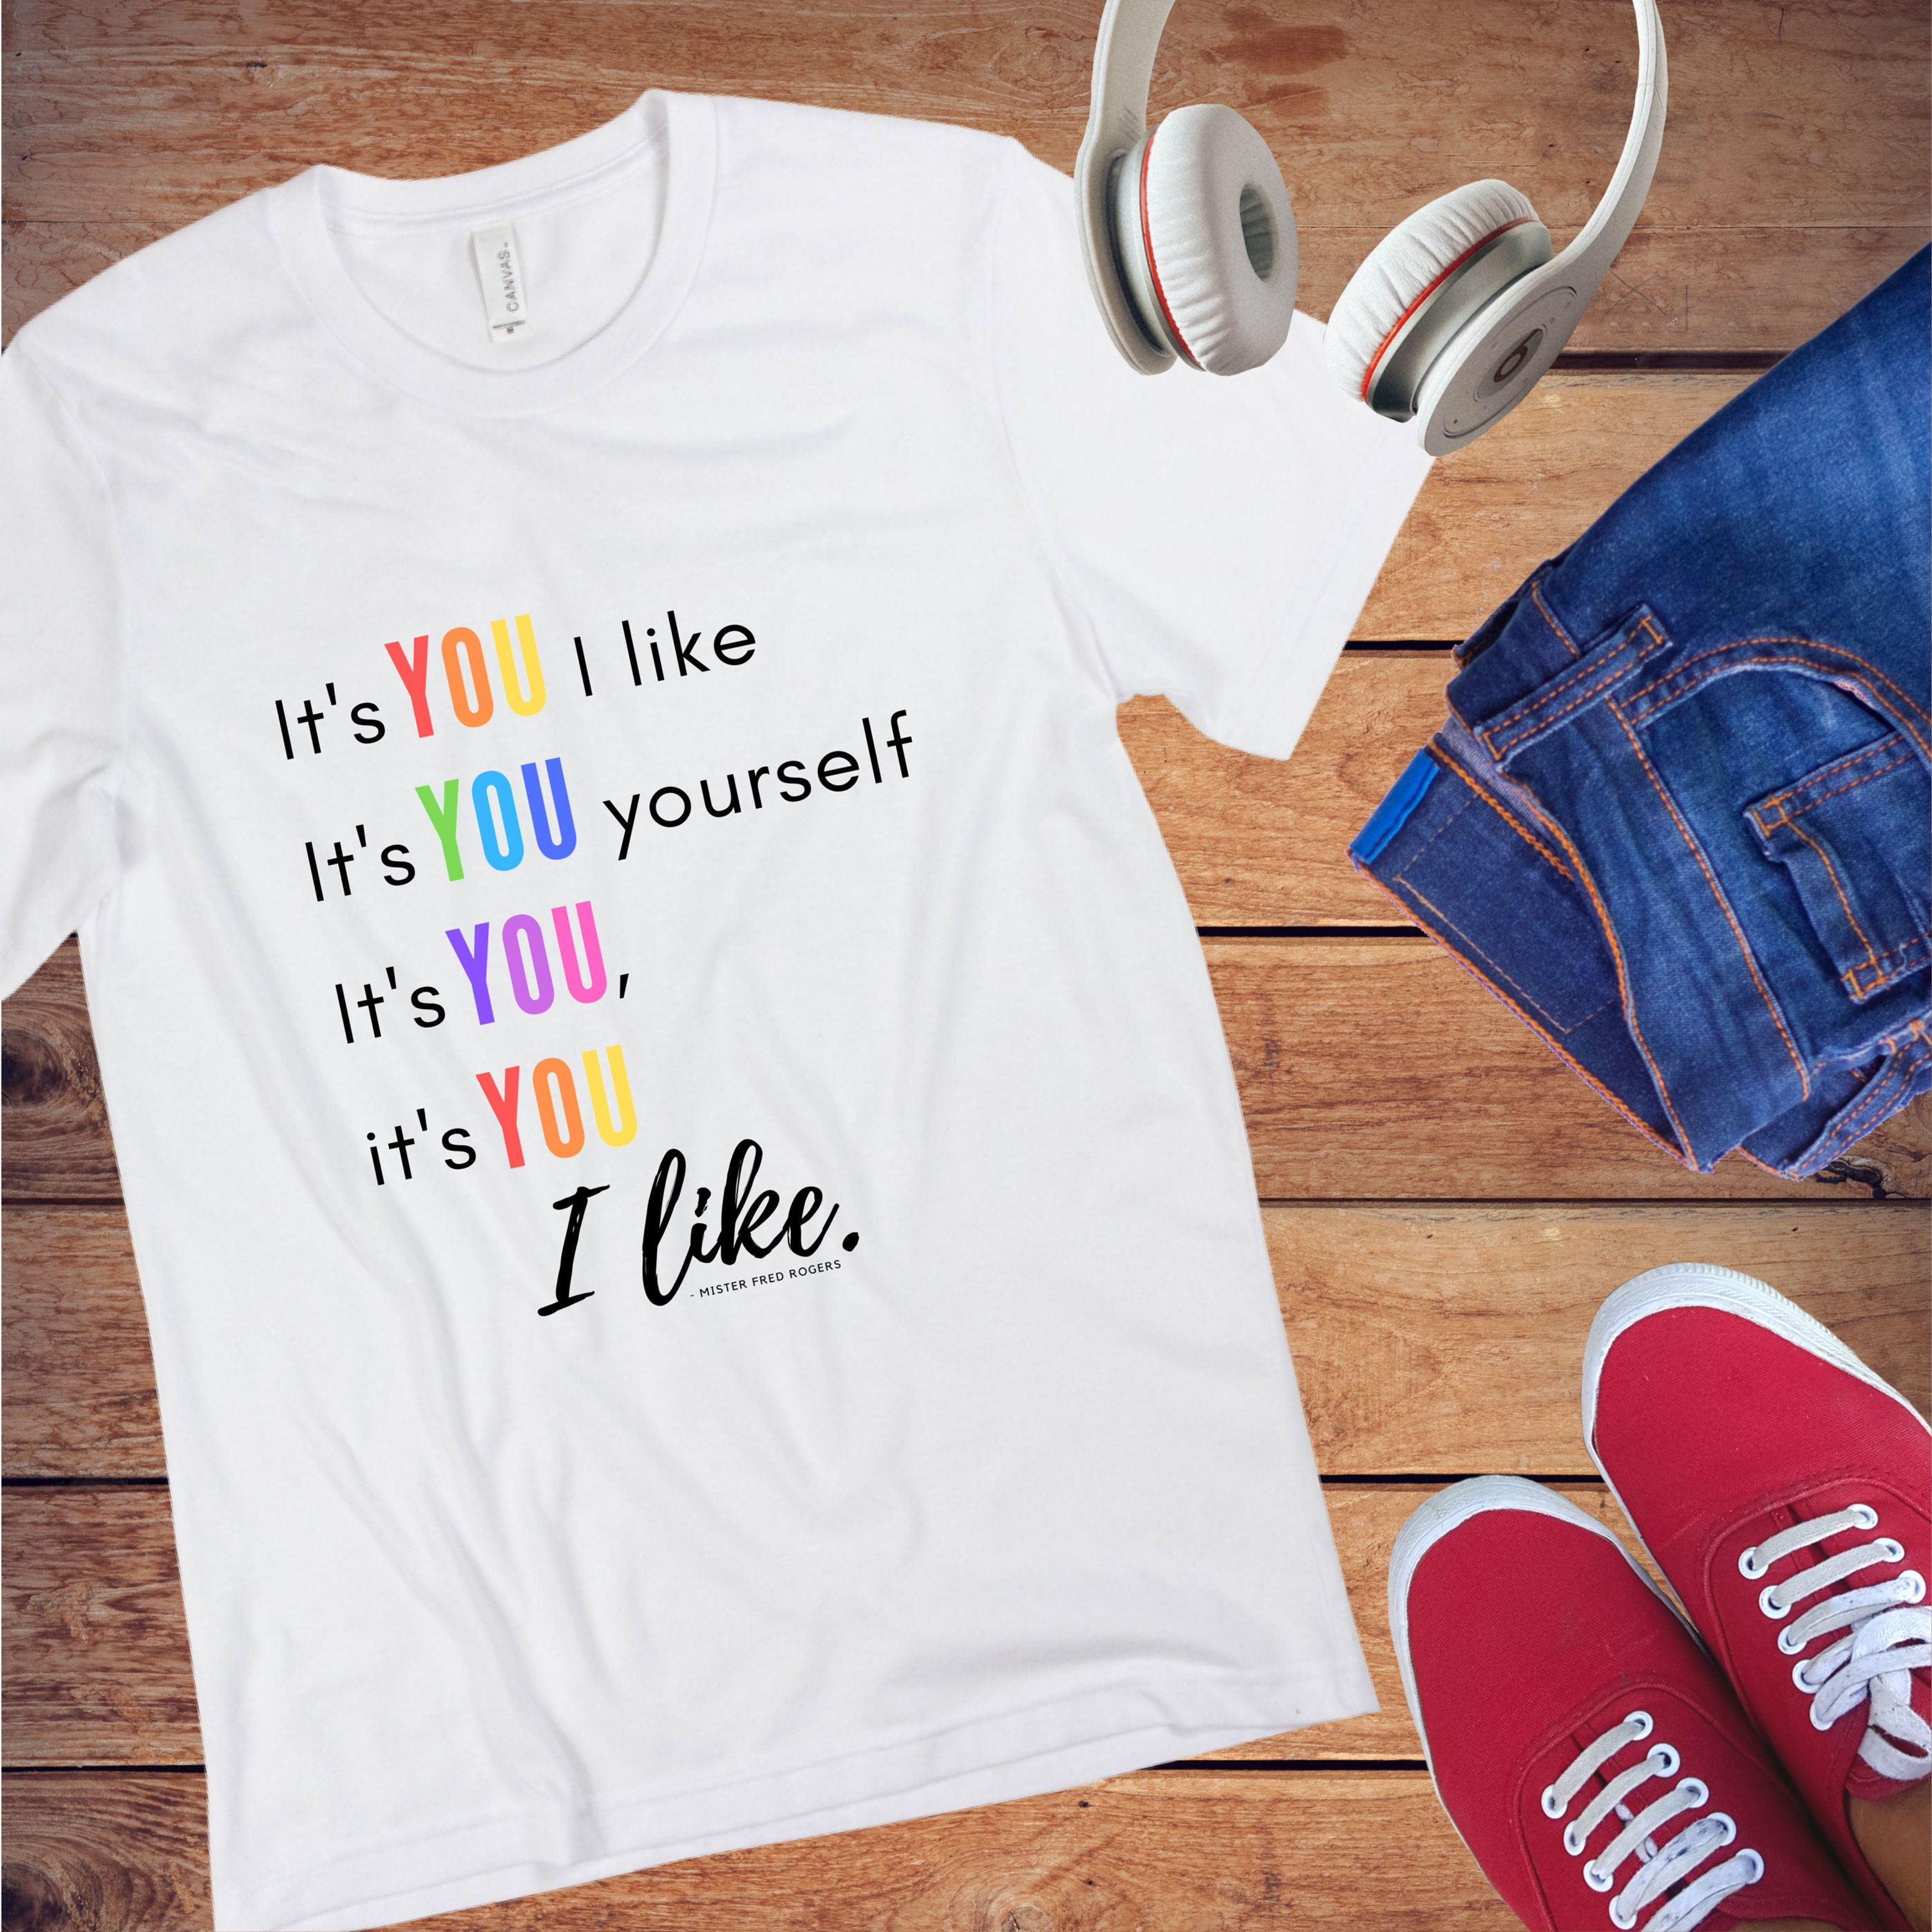 Mr Rogers Inspirational T Shirt It S You I Like Mister Rogers Lyrics Inspirational Shirt With Saying For Men And Women Inspirational Shirt Shirts With Sayings Trendy Fashion Women